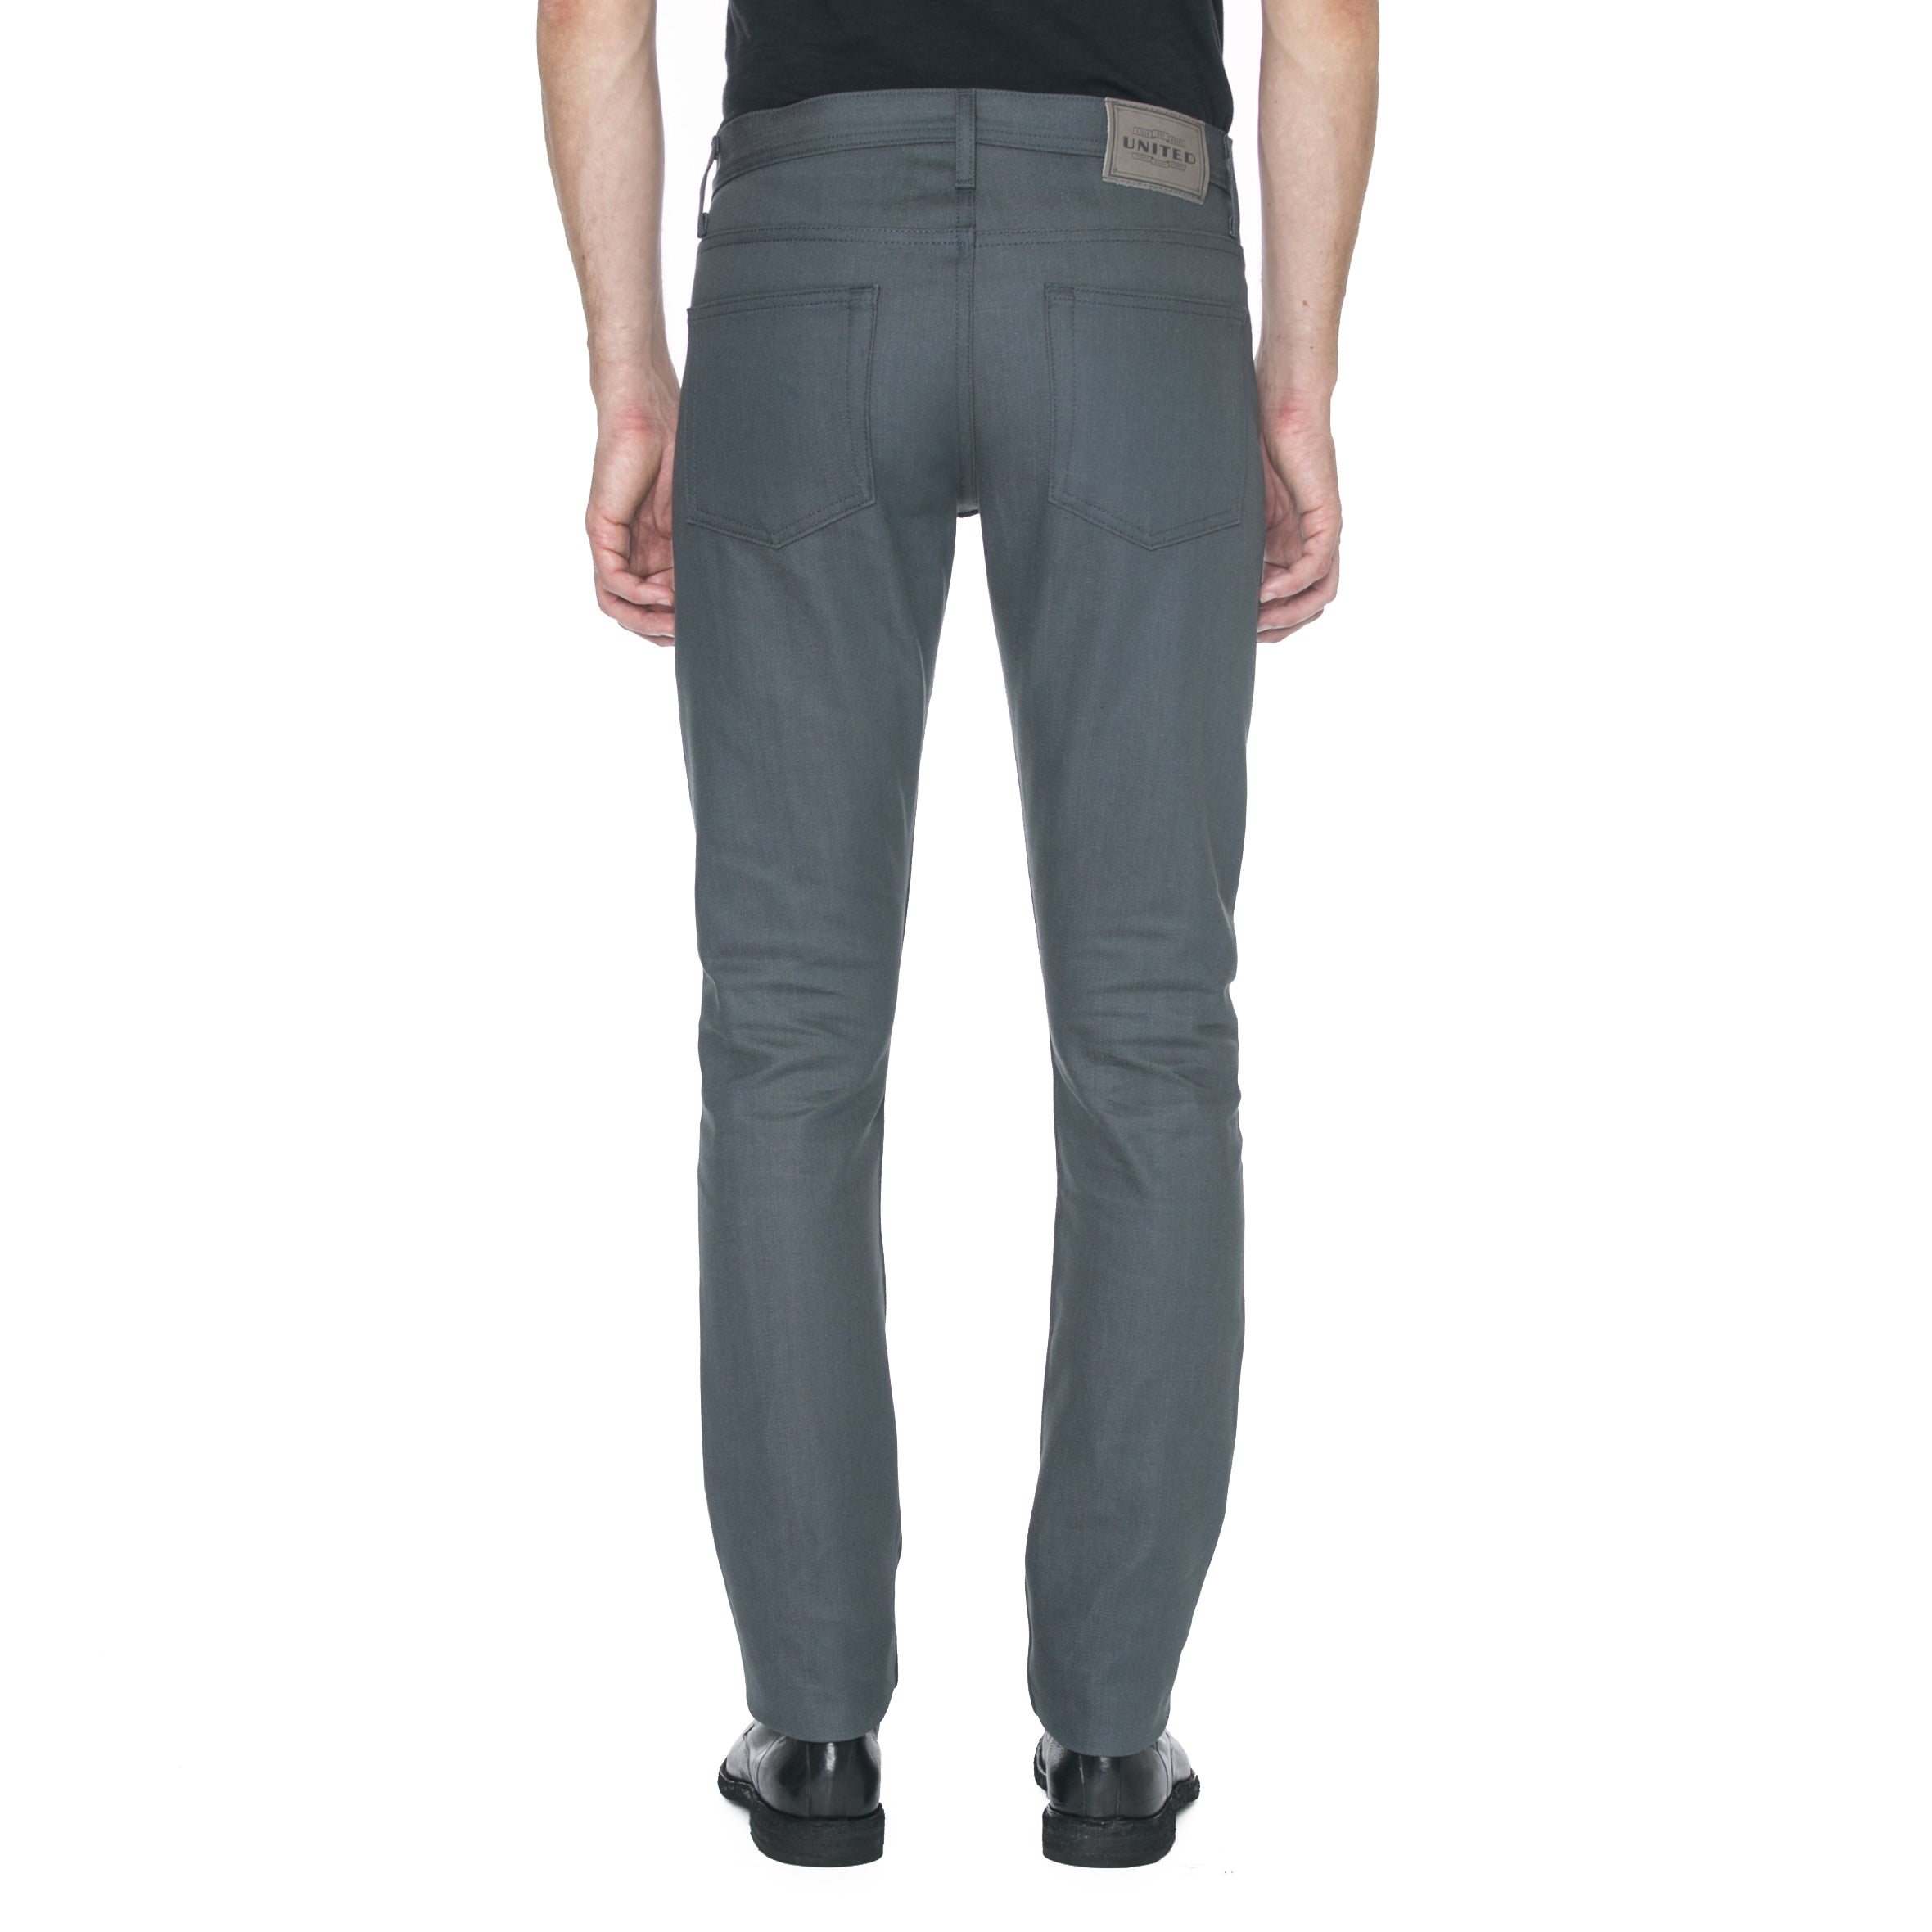 Narrow Fit Grey Denim